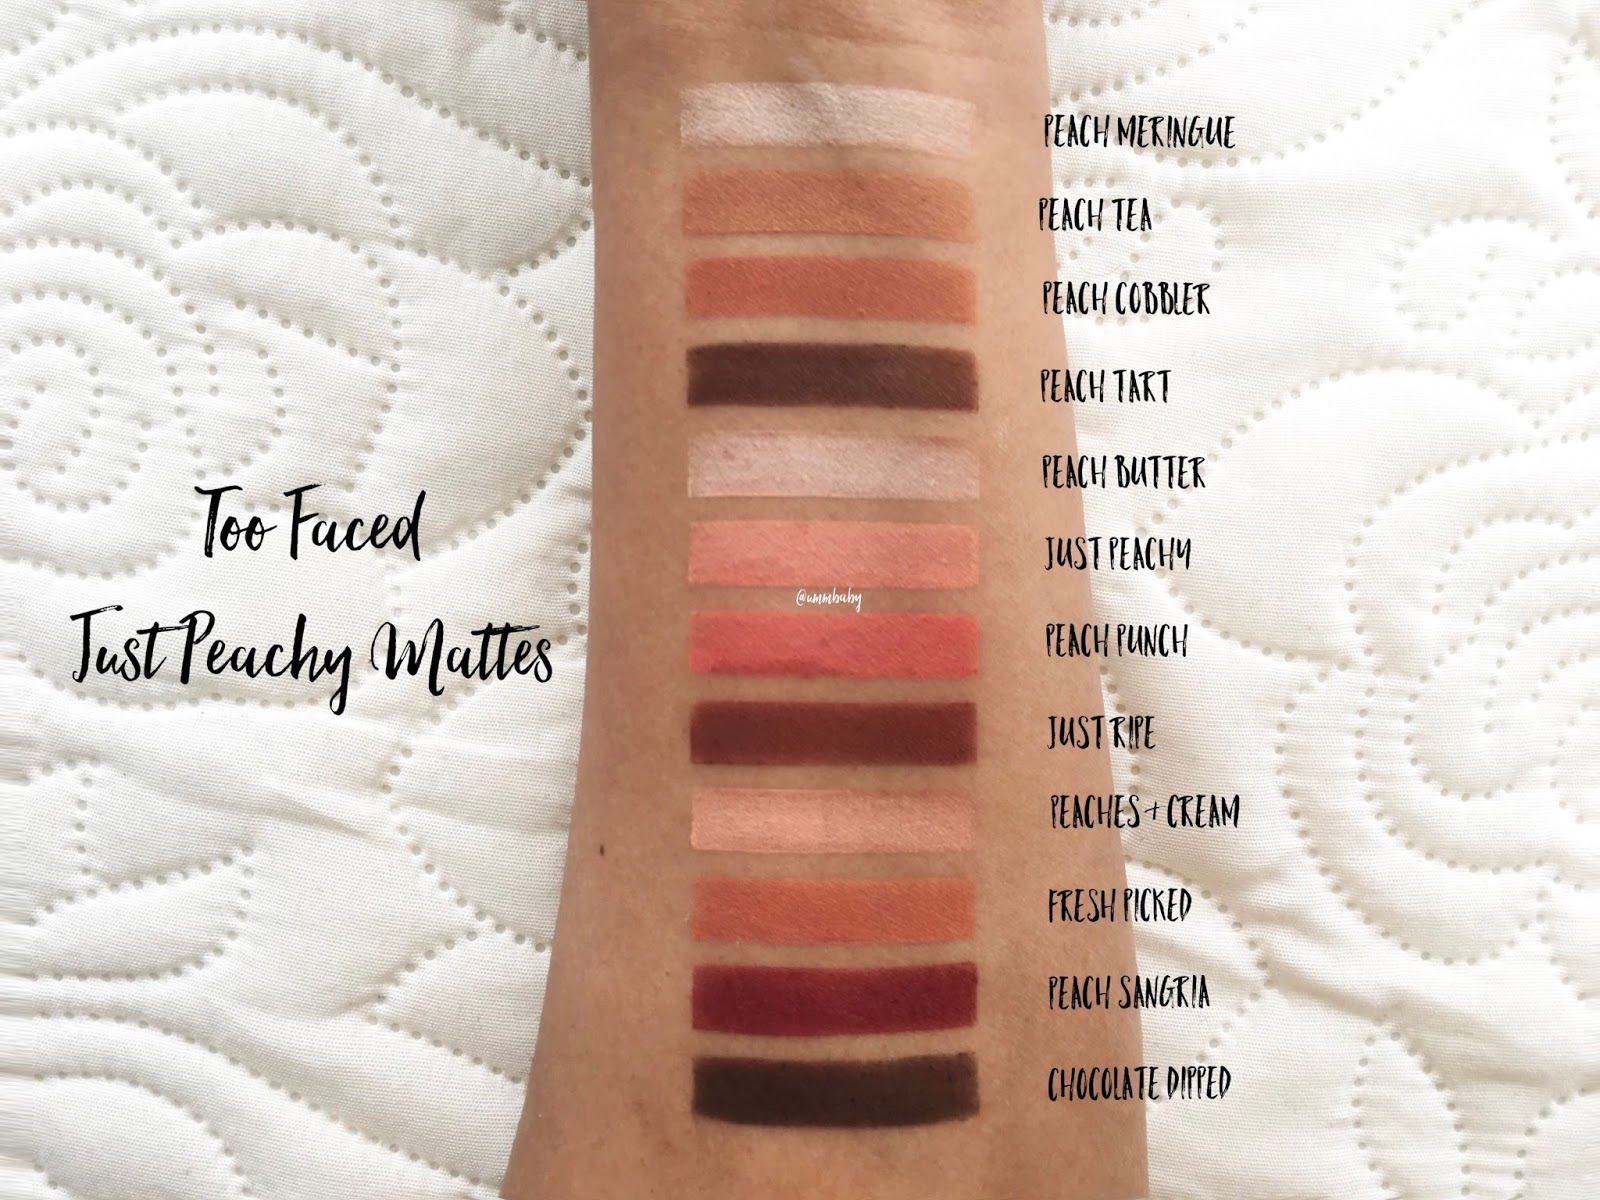 too faced just peachy mattes swatches, medium skin, nc40 swatches, too faced just peachy mattes eyeshadow palette swatches, too faced just peachy mattes swatches medium nc40 deeper skin swatch, too faced just peachy mattes swatches